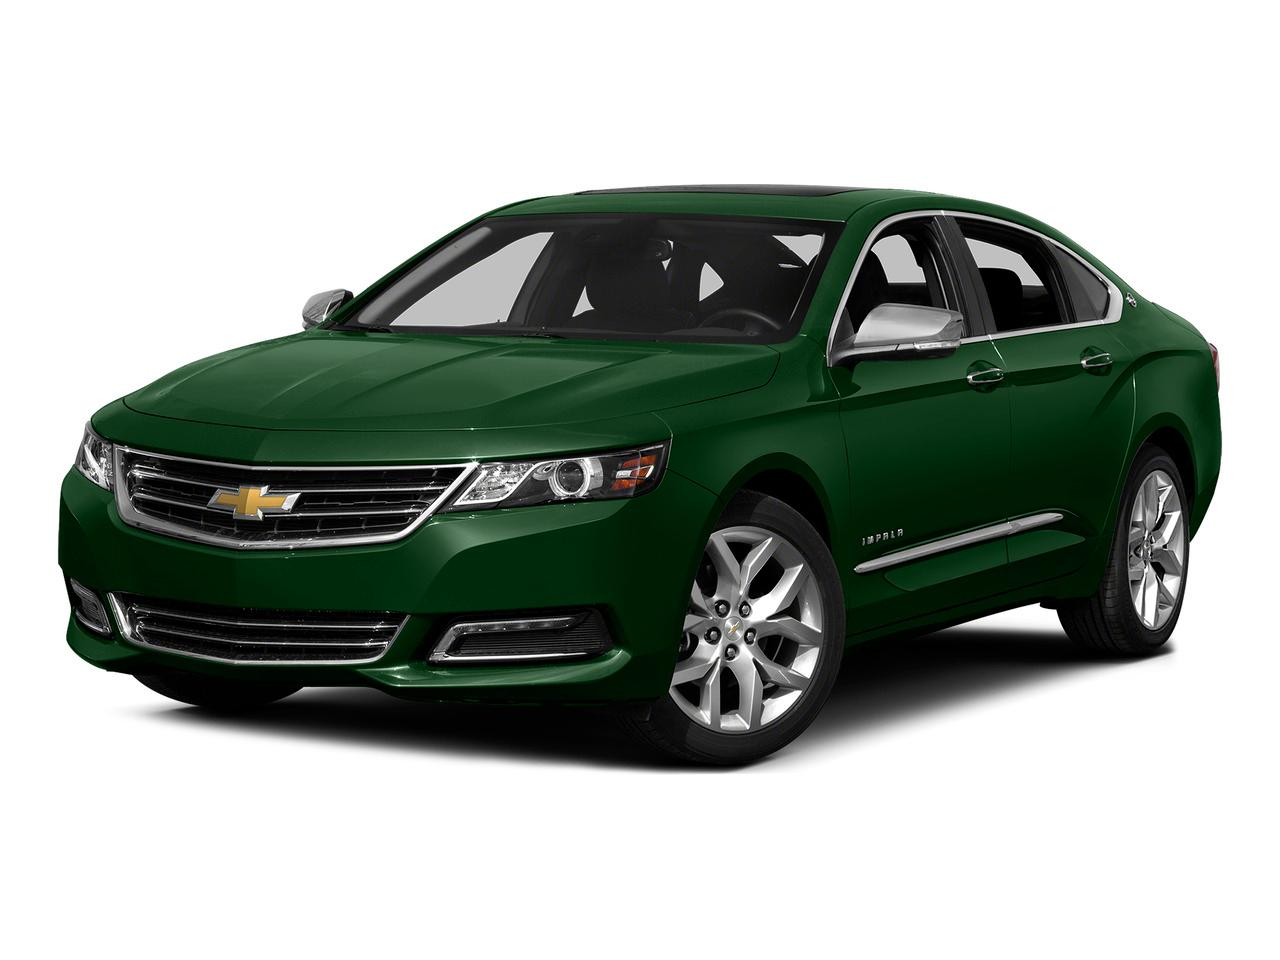 2015 Chevrolet Impala Vehicle Photo in Beaufort, SC 29906